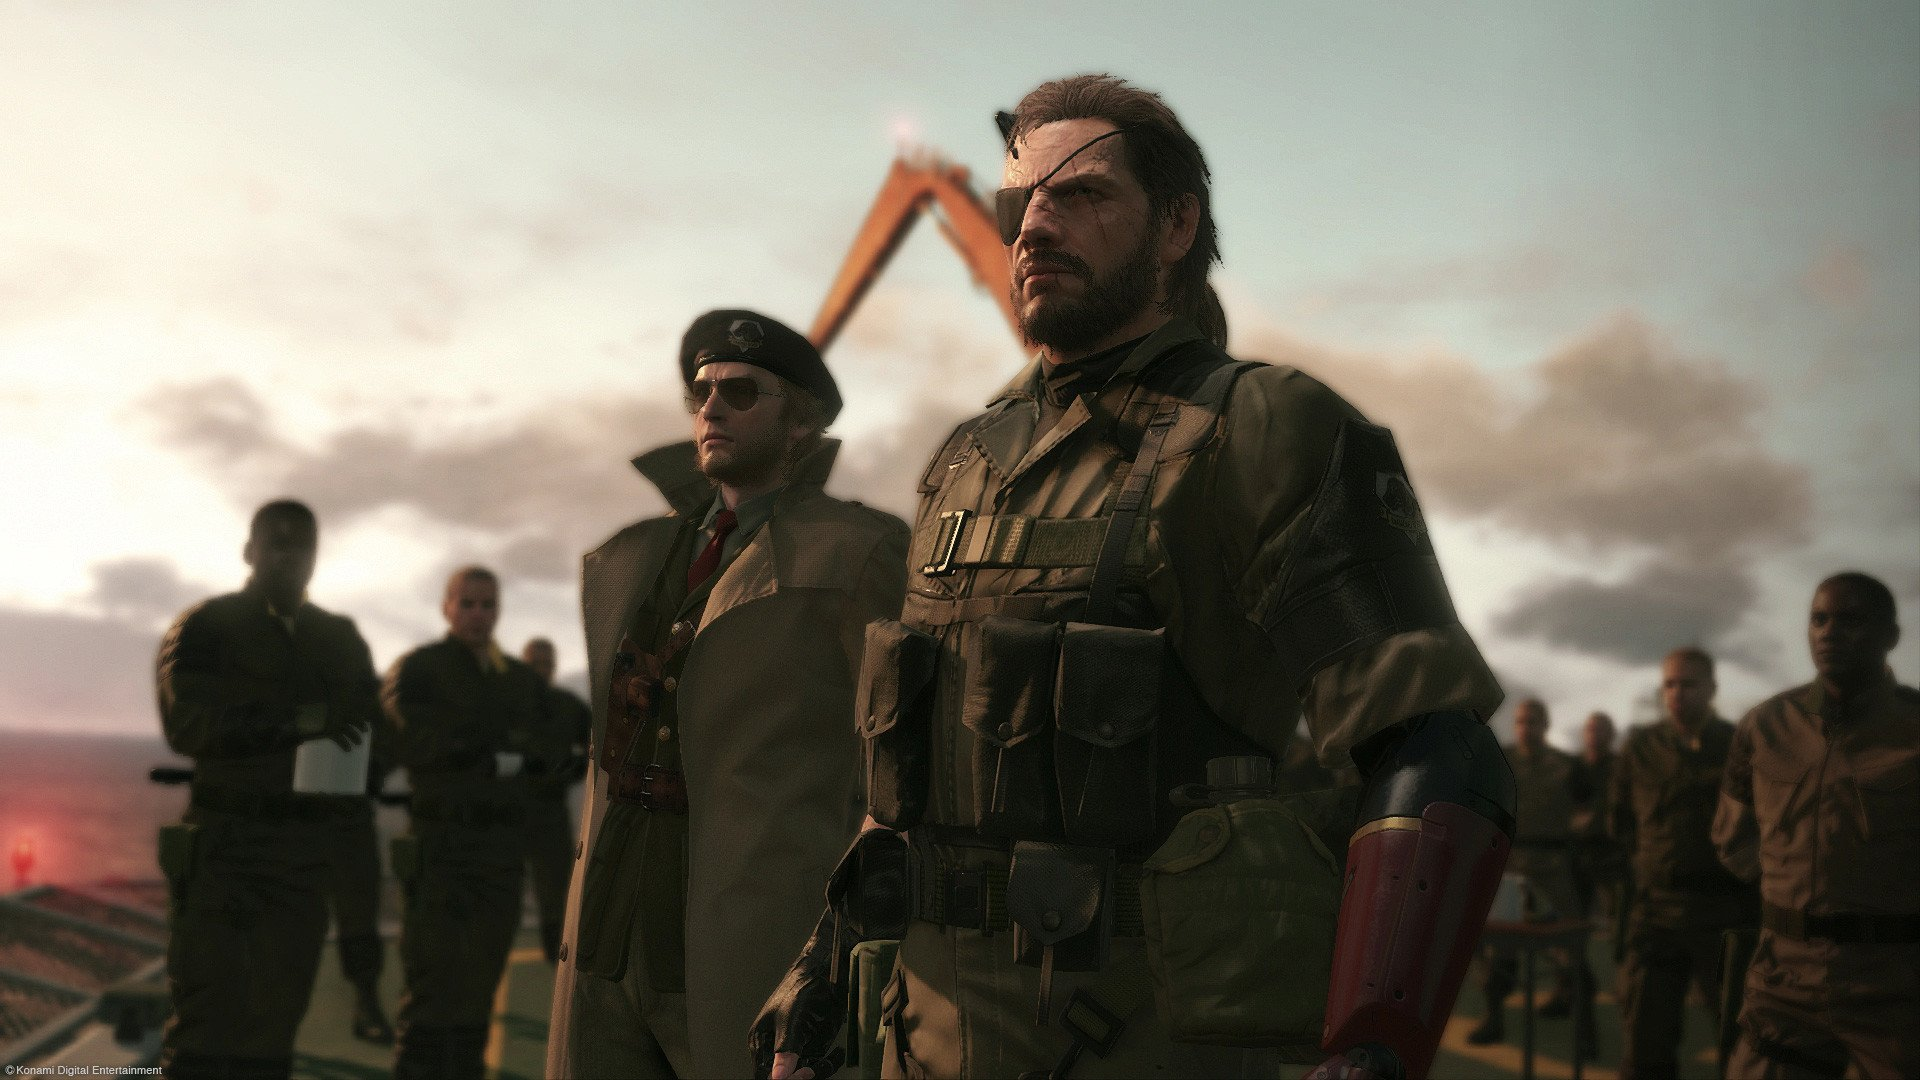 Punished Snake looking on as Konami rakes in cash